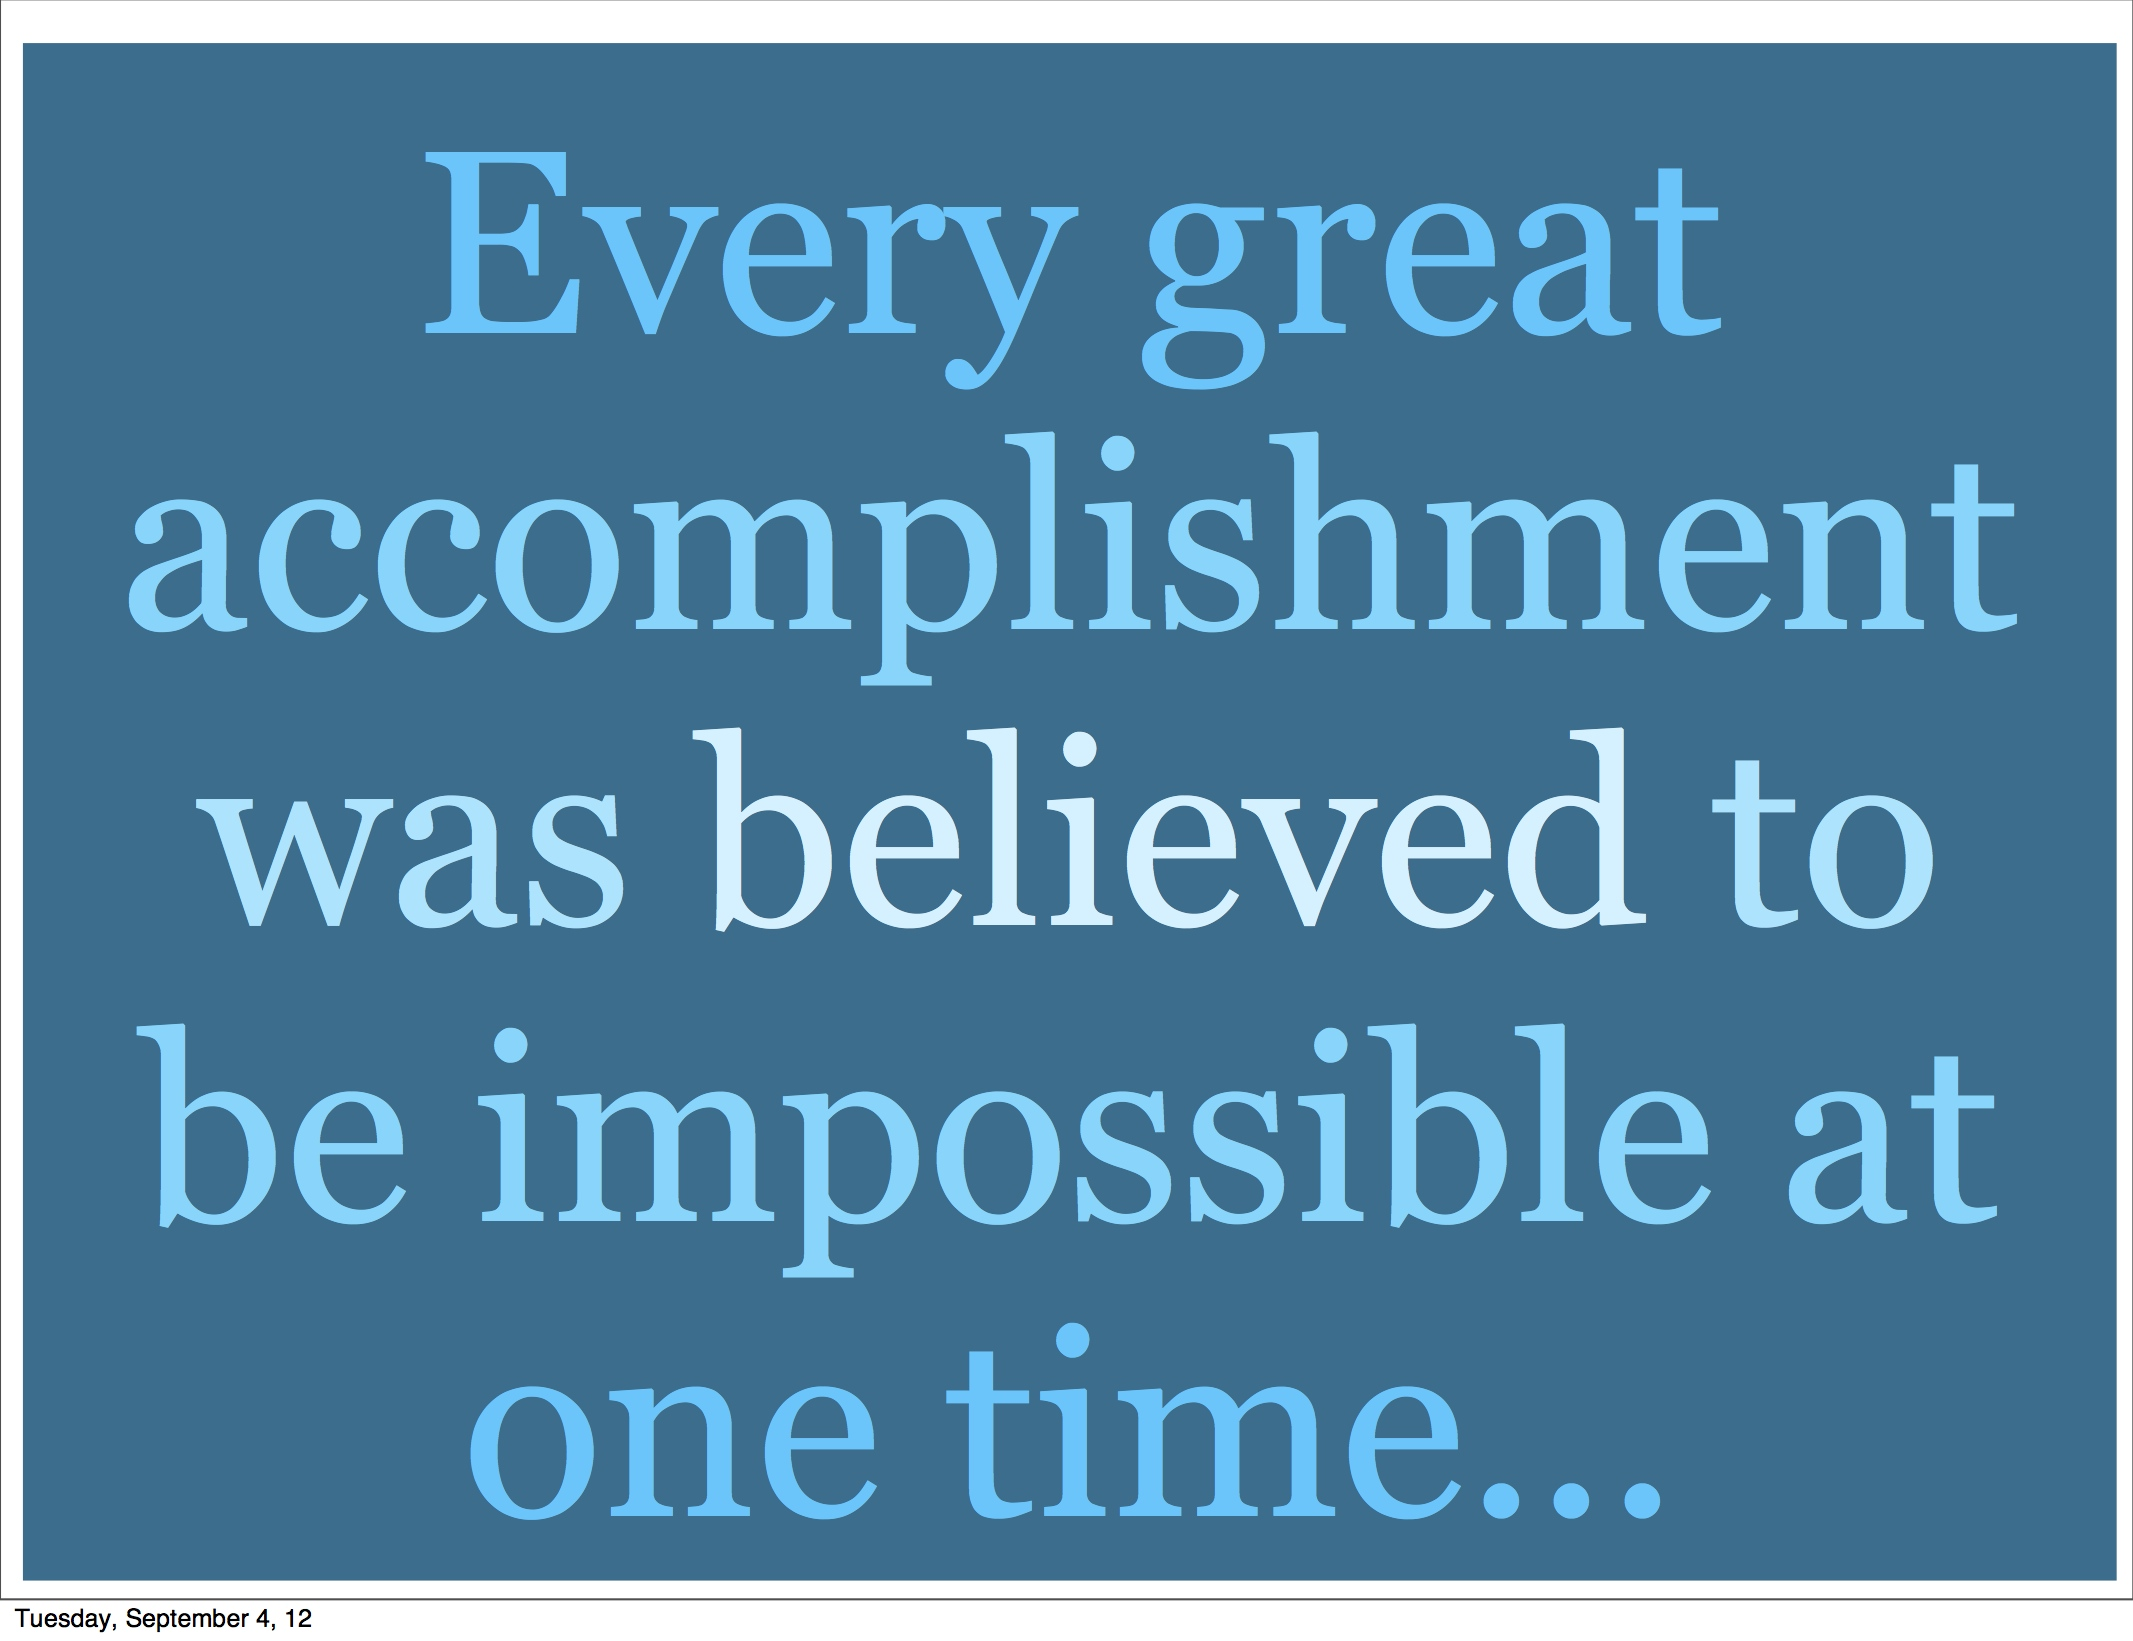 Every Great Accomplishment Was Believed To Be Impossible At One Time.